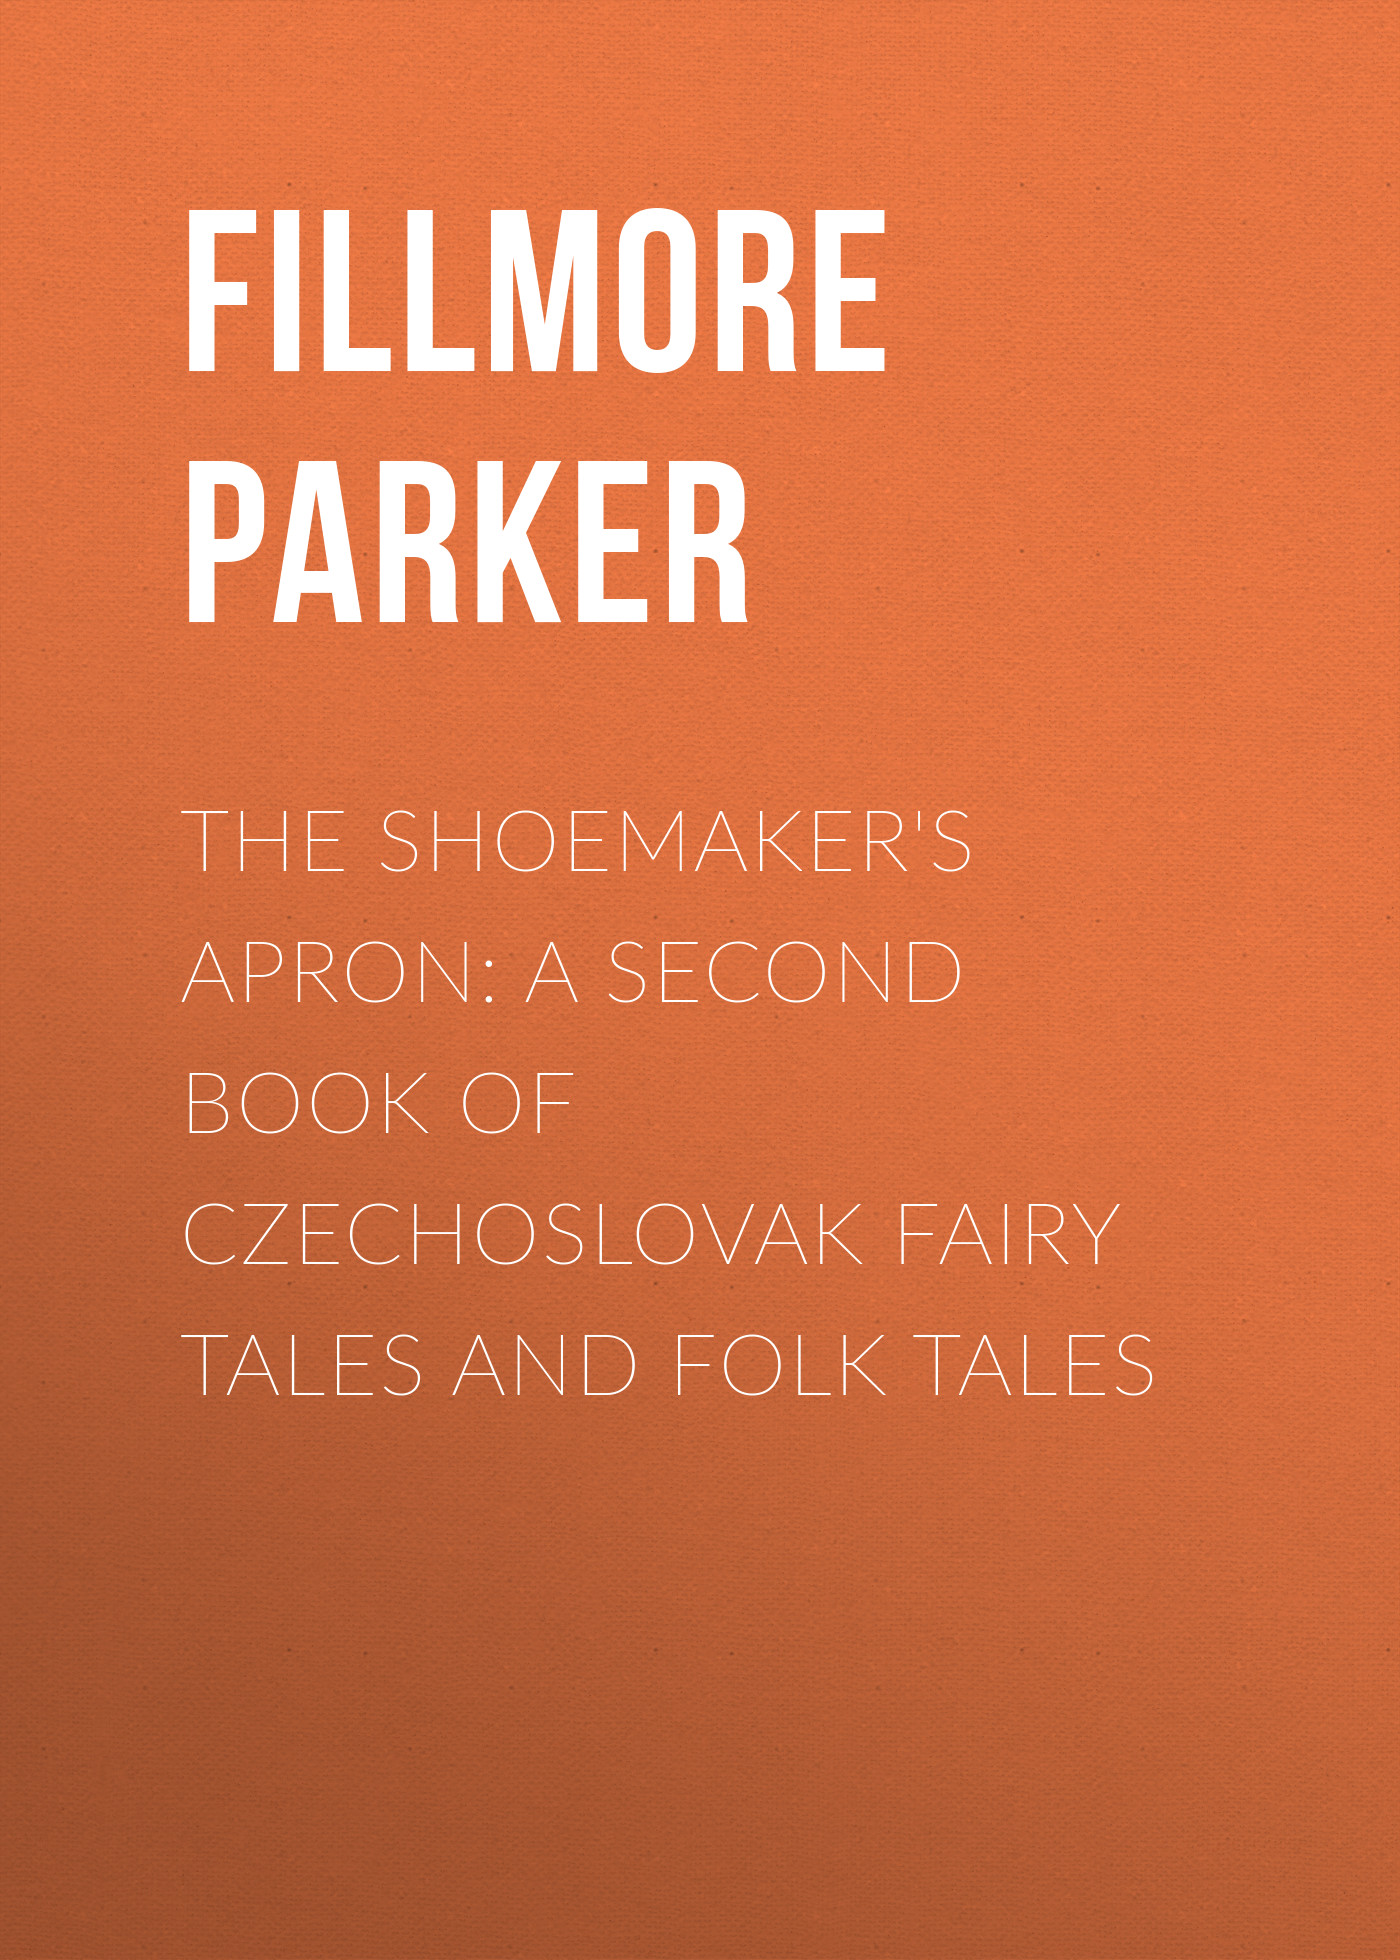 Fillmore Parker The Shoemaker's Apron: A Second Book of Czechoslovak Fairy Tales and Folk Tales цена в Москве и Питере